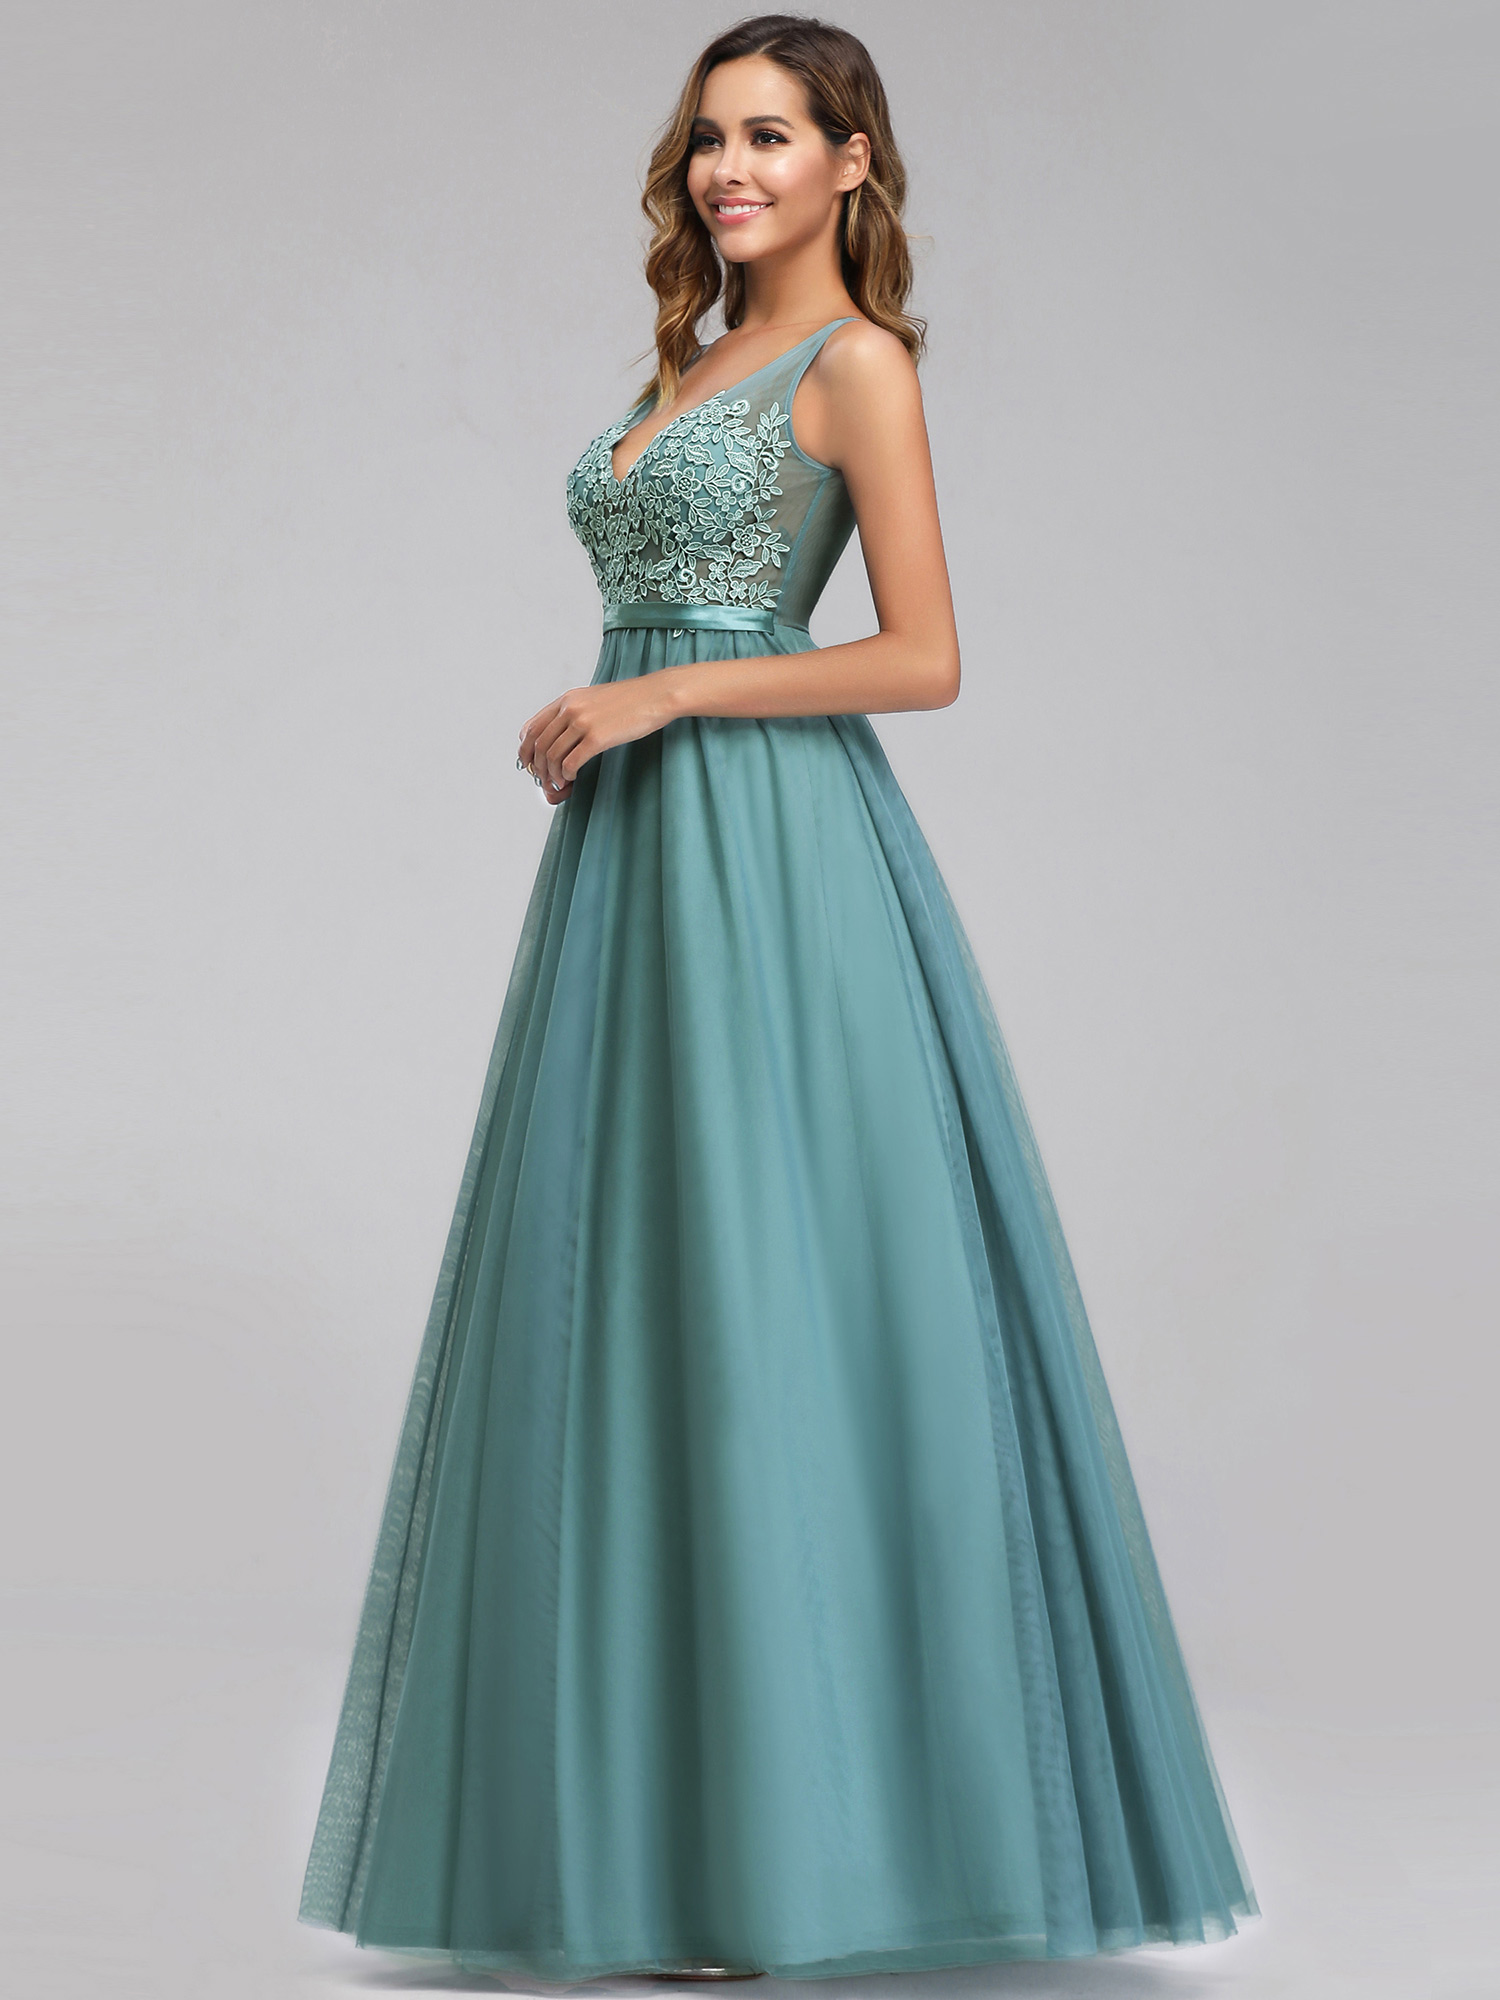 Ever-pretty-Formal-V-neck-Celebrity-Prom-Gown-Long-Evening-A-line-Cocktail-Dress thumbnail 6